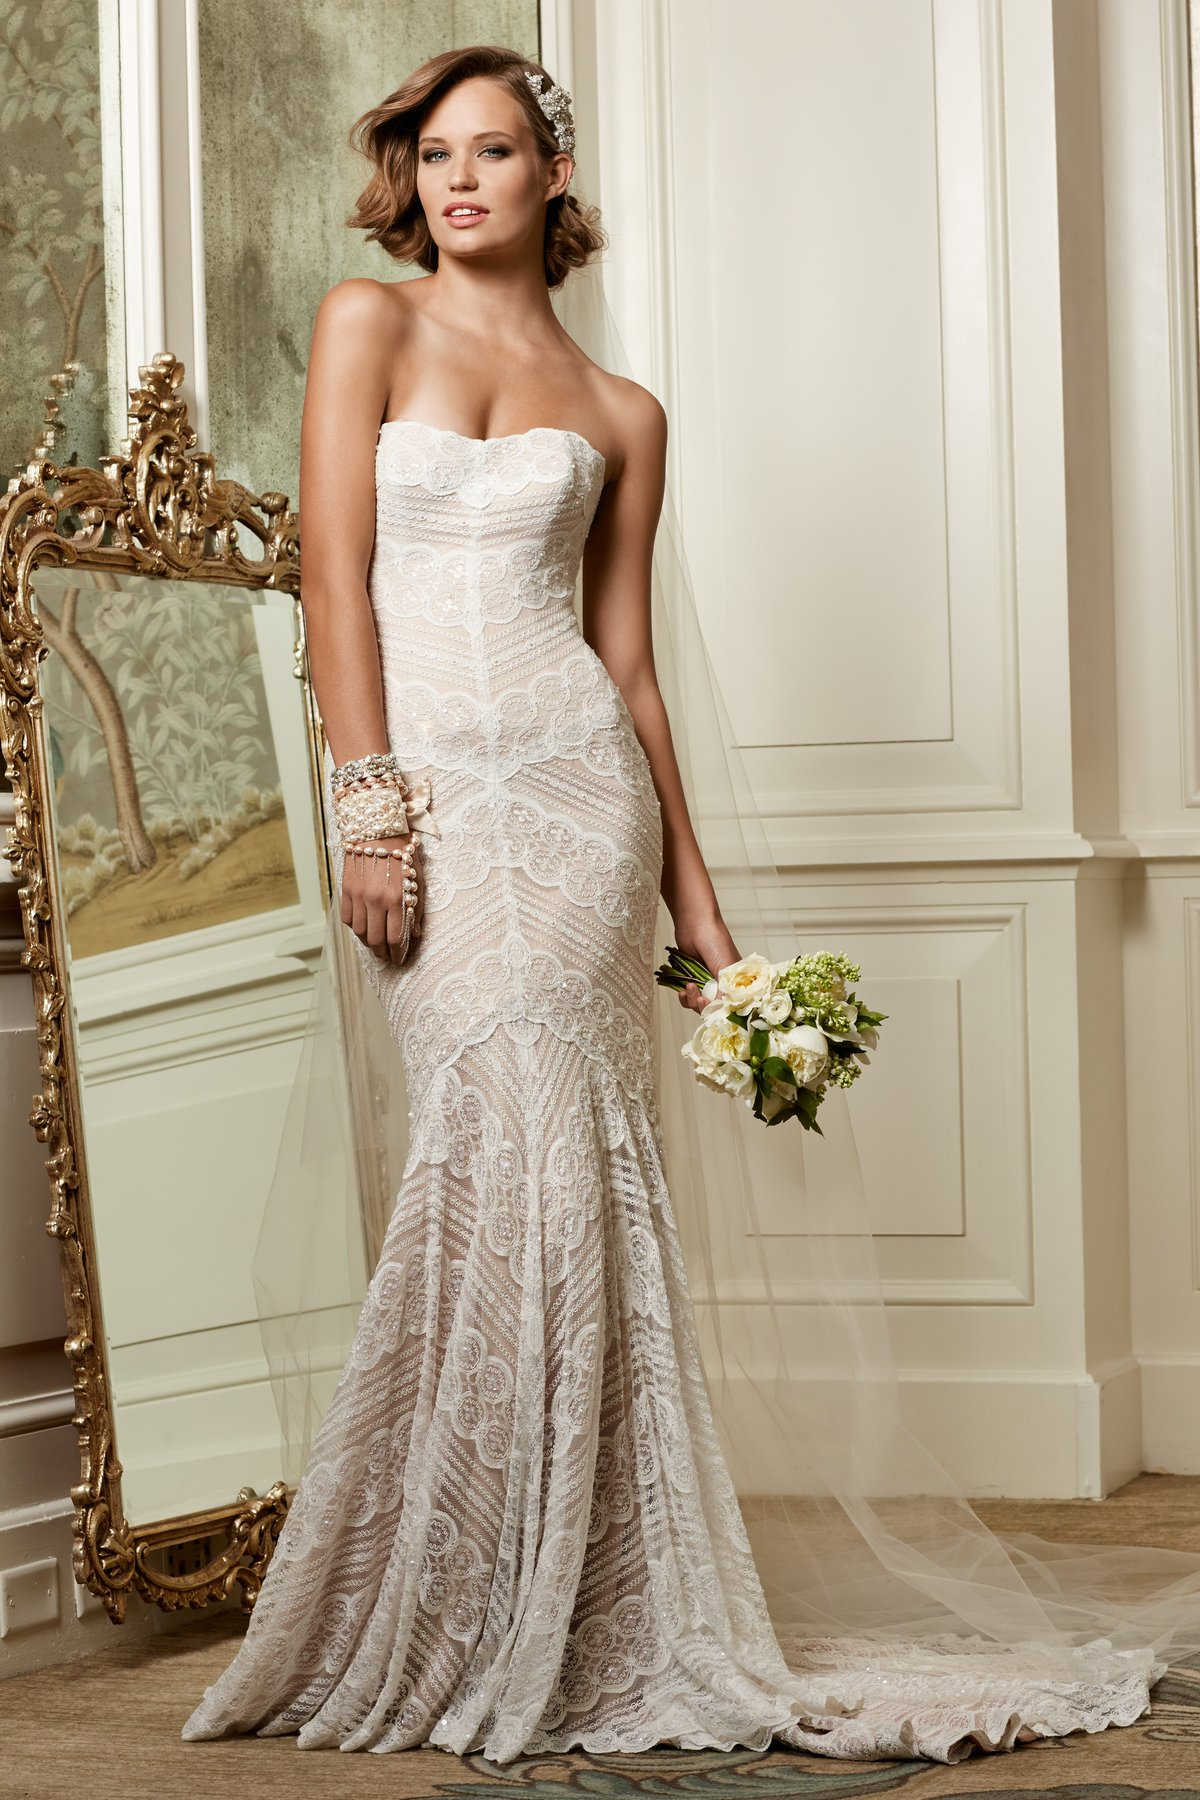 G Bridal Dresses - Wedding Dresses In Redlands